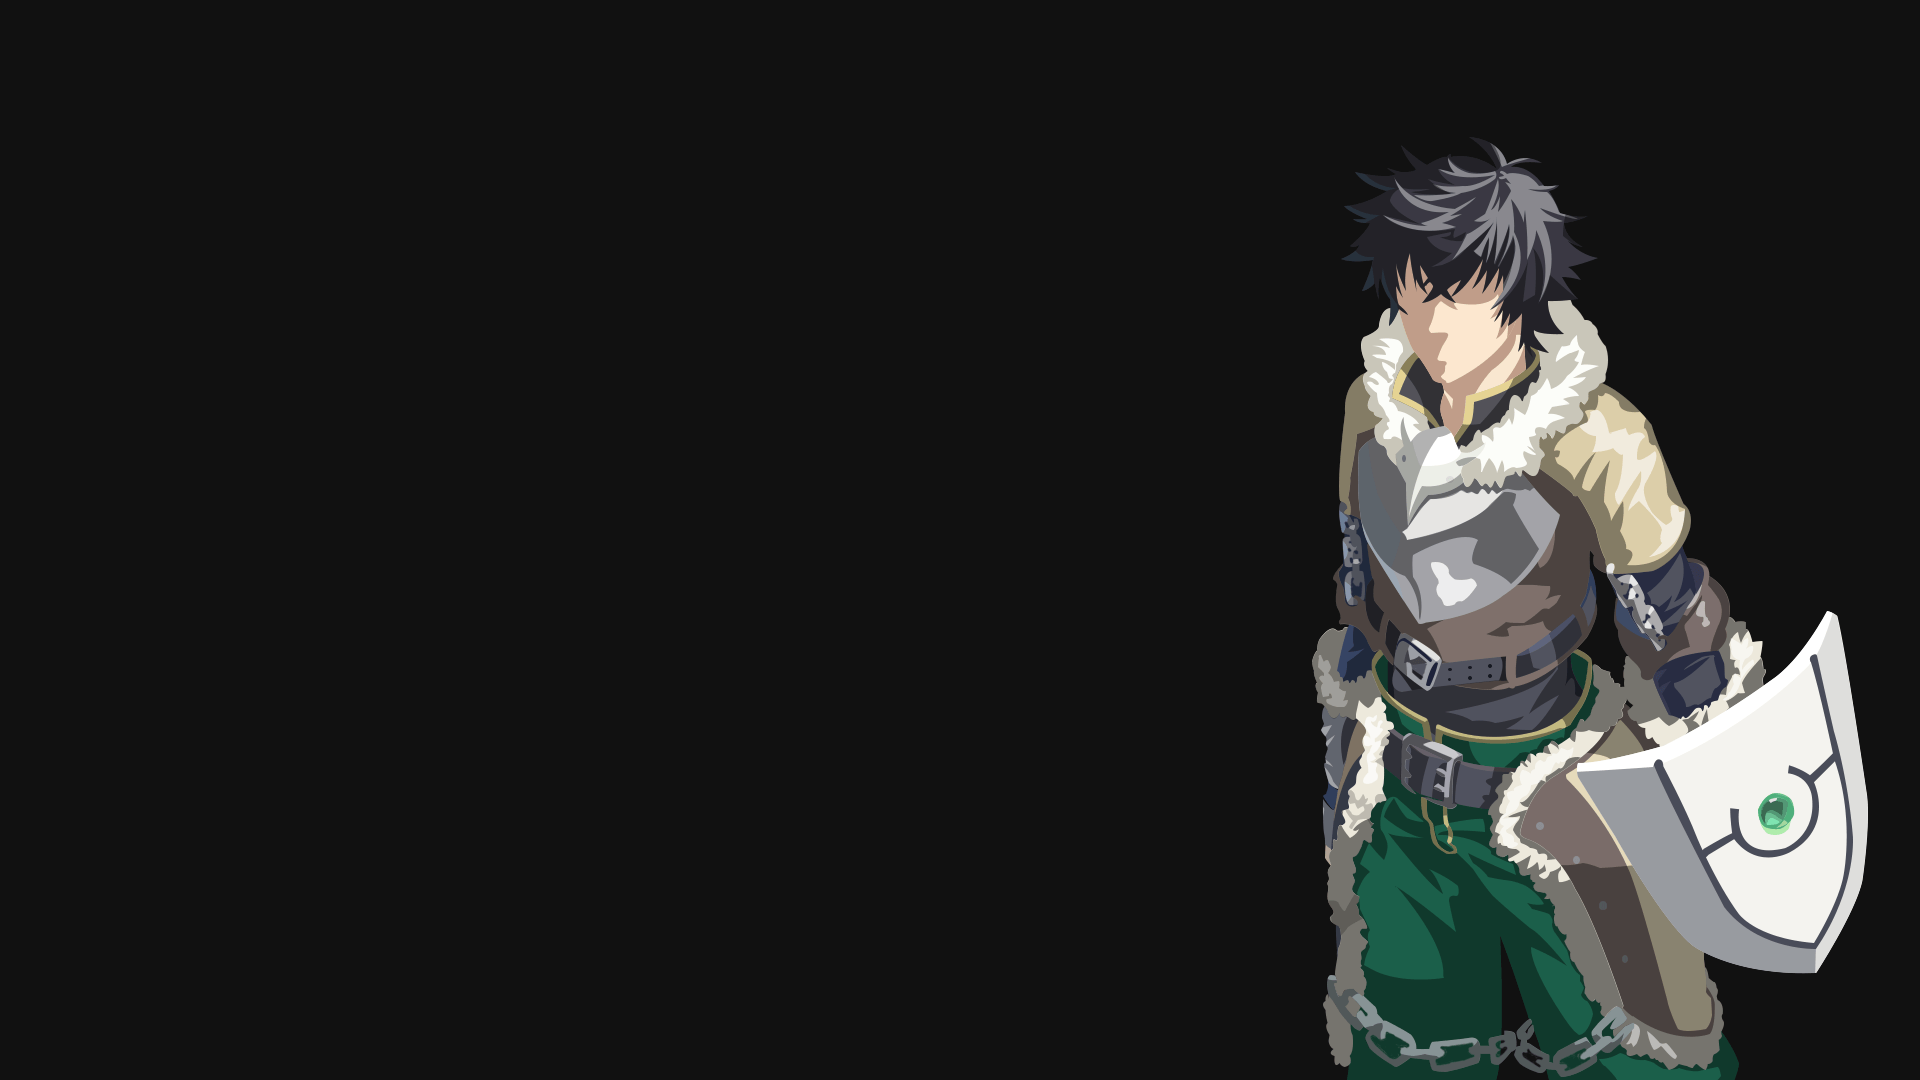 The Rising Of The Shield Hero Wallpapers - Wallpaper Cave